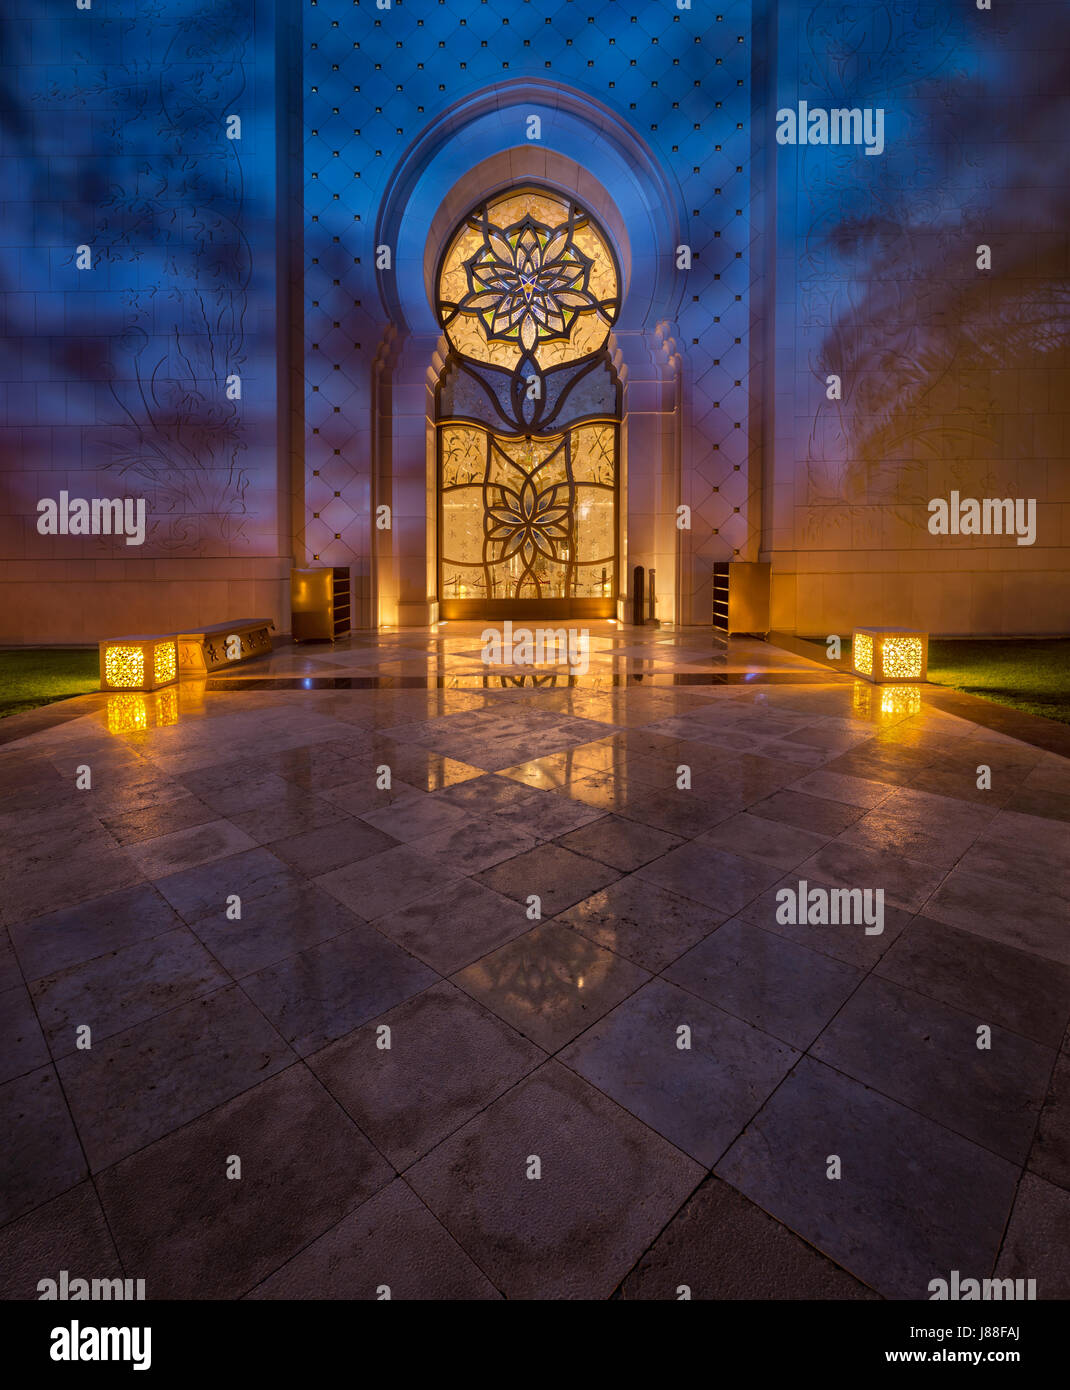 Sheikh Zayed mosque in abudhabi Luxury Islamic Door  with the reflection on marbles - Stock Image